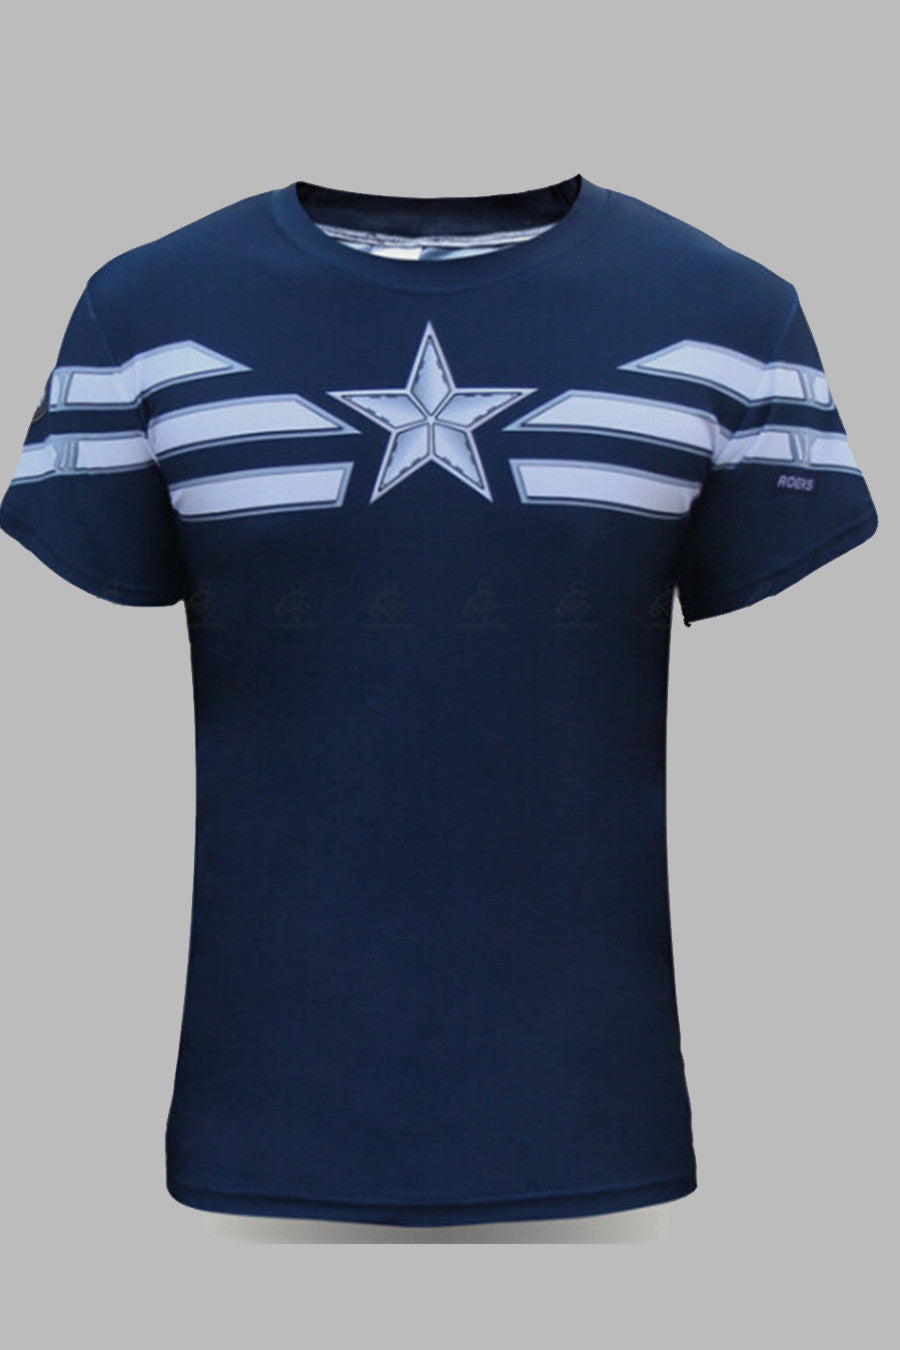 navy crew neck captain america tee men 39 s tee shirts. Black Bedroom Furniture Sets. Home Design Ideas